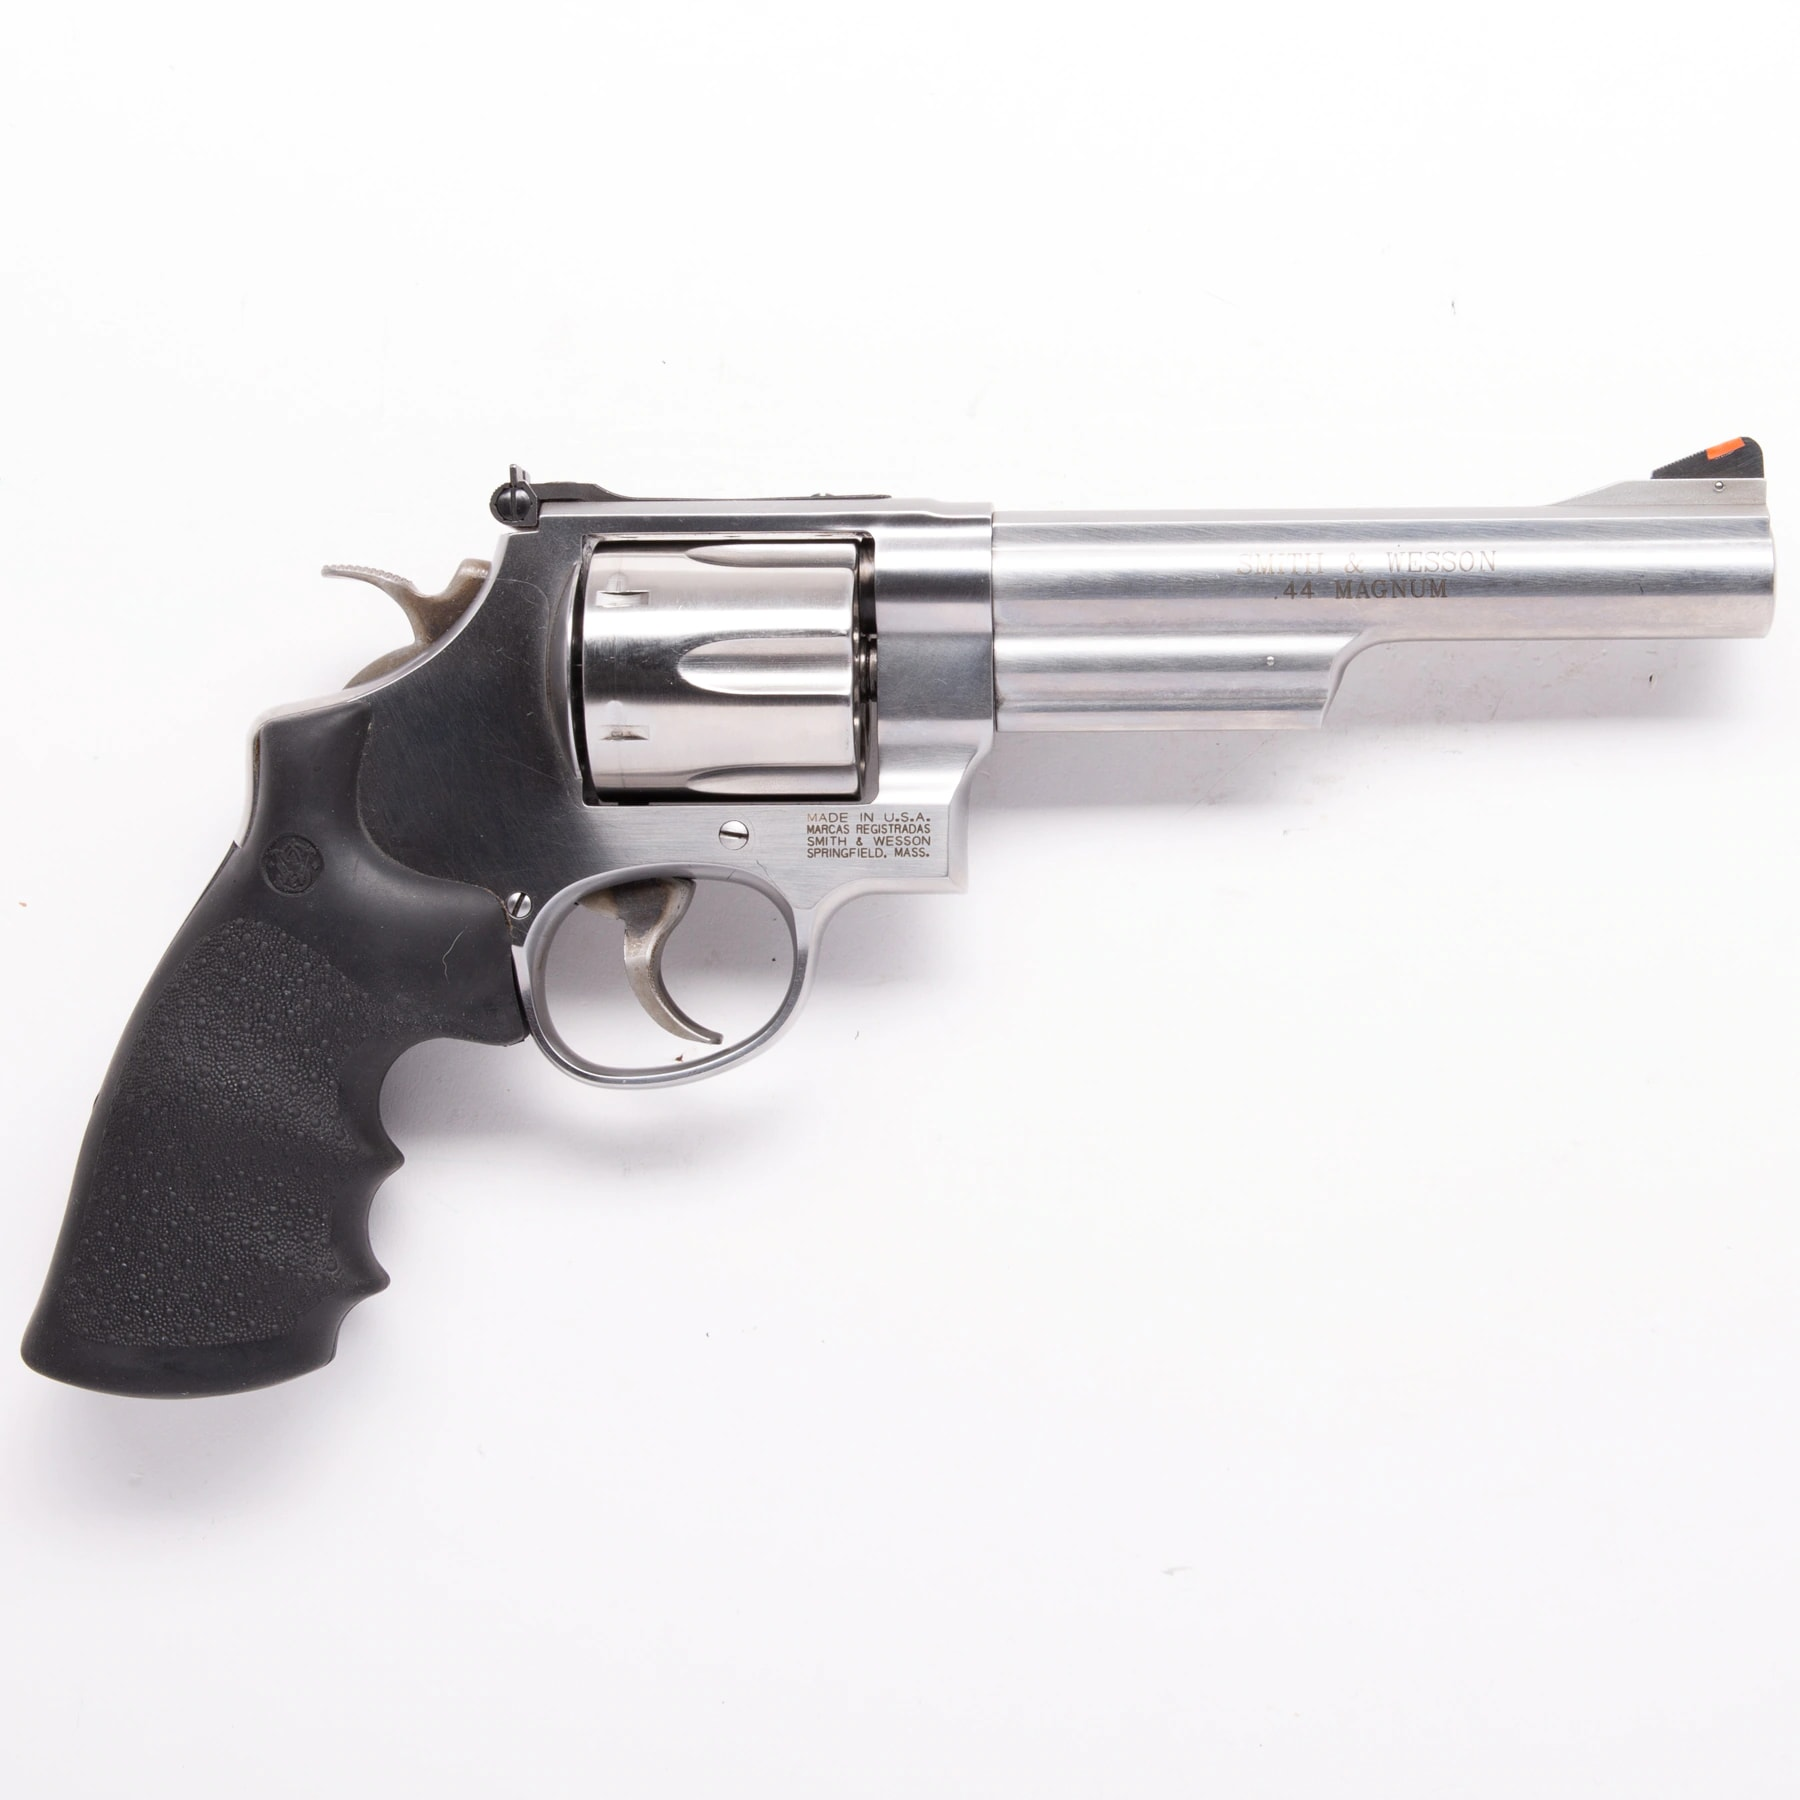 SMITH & WESSON MODEL 629-5